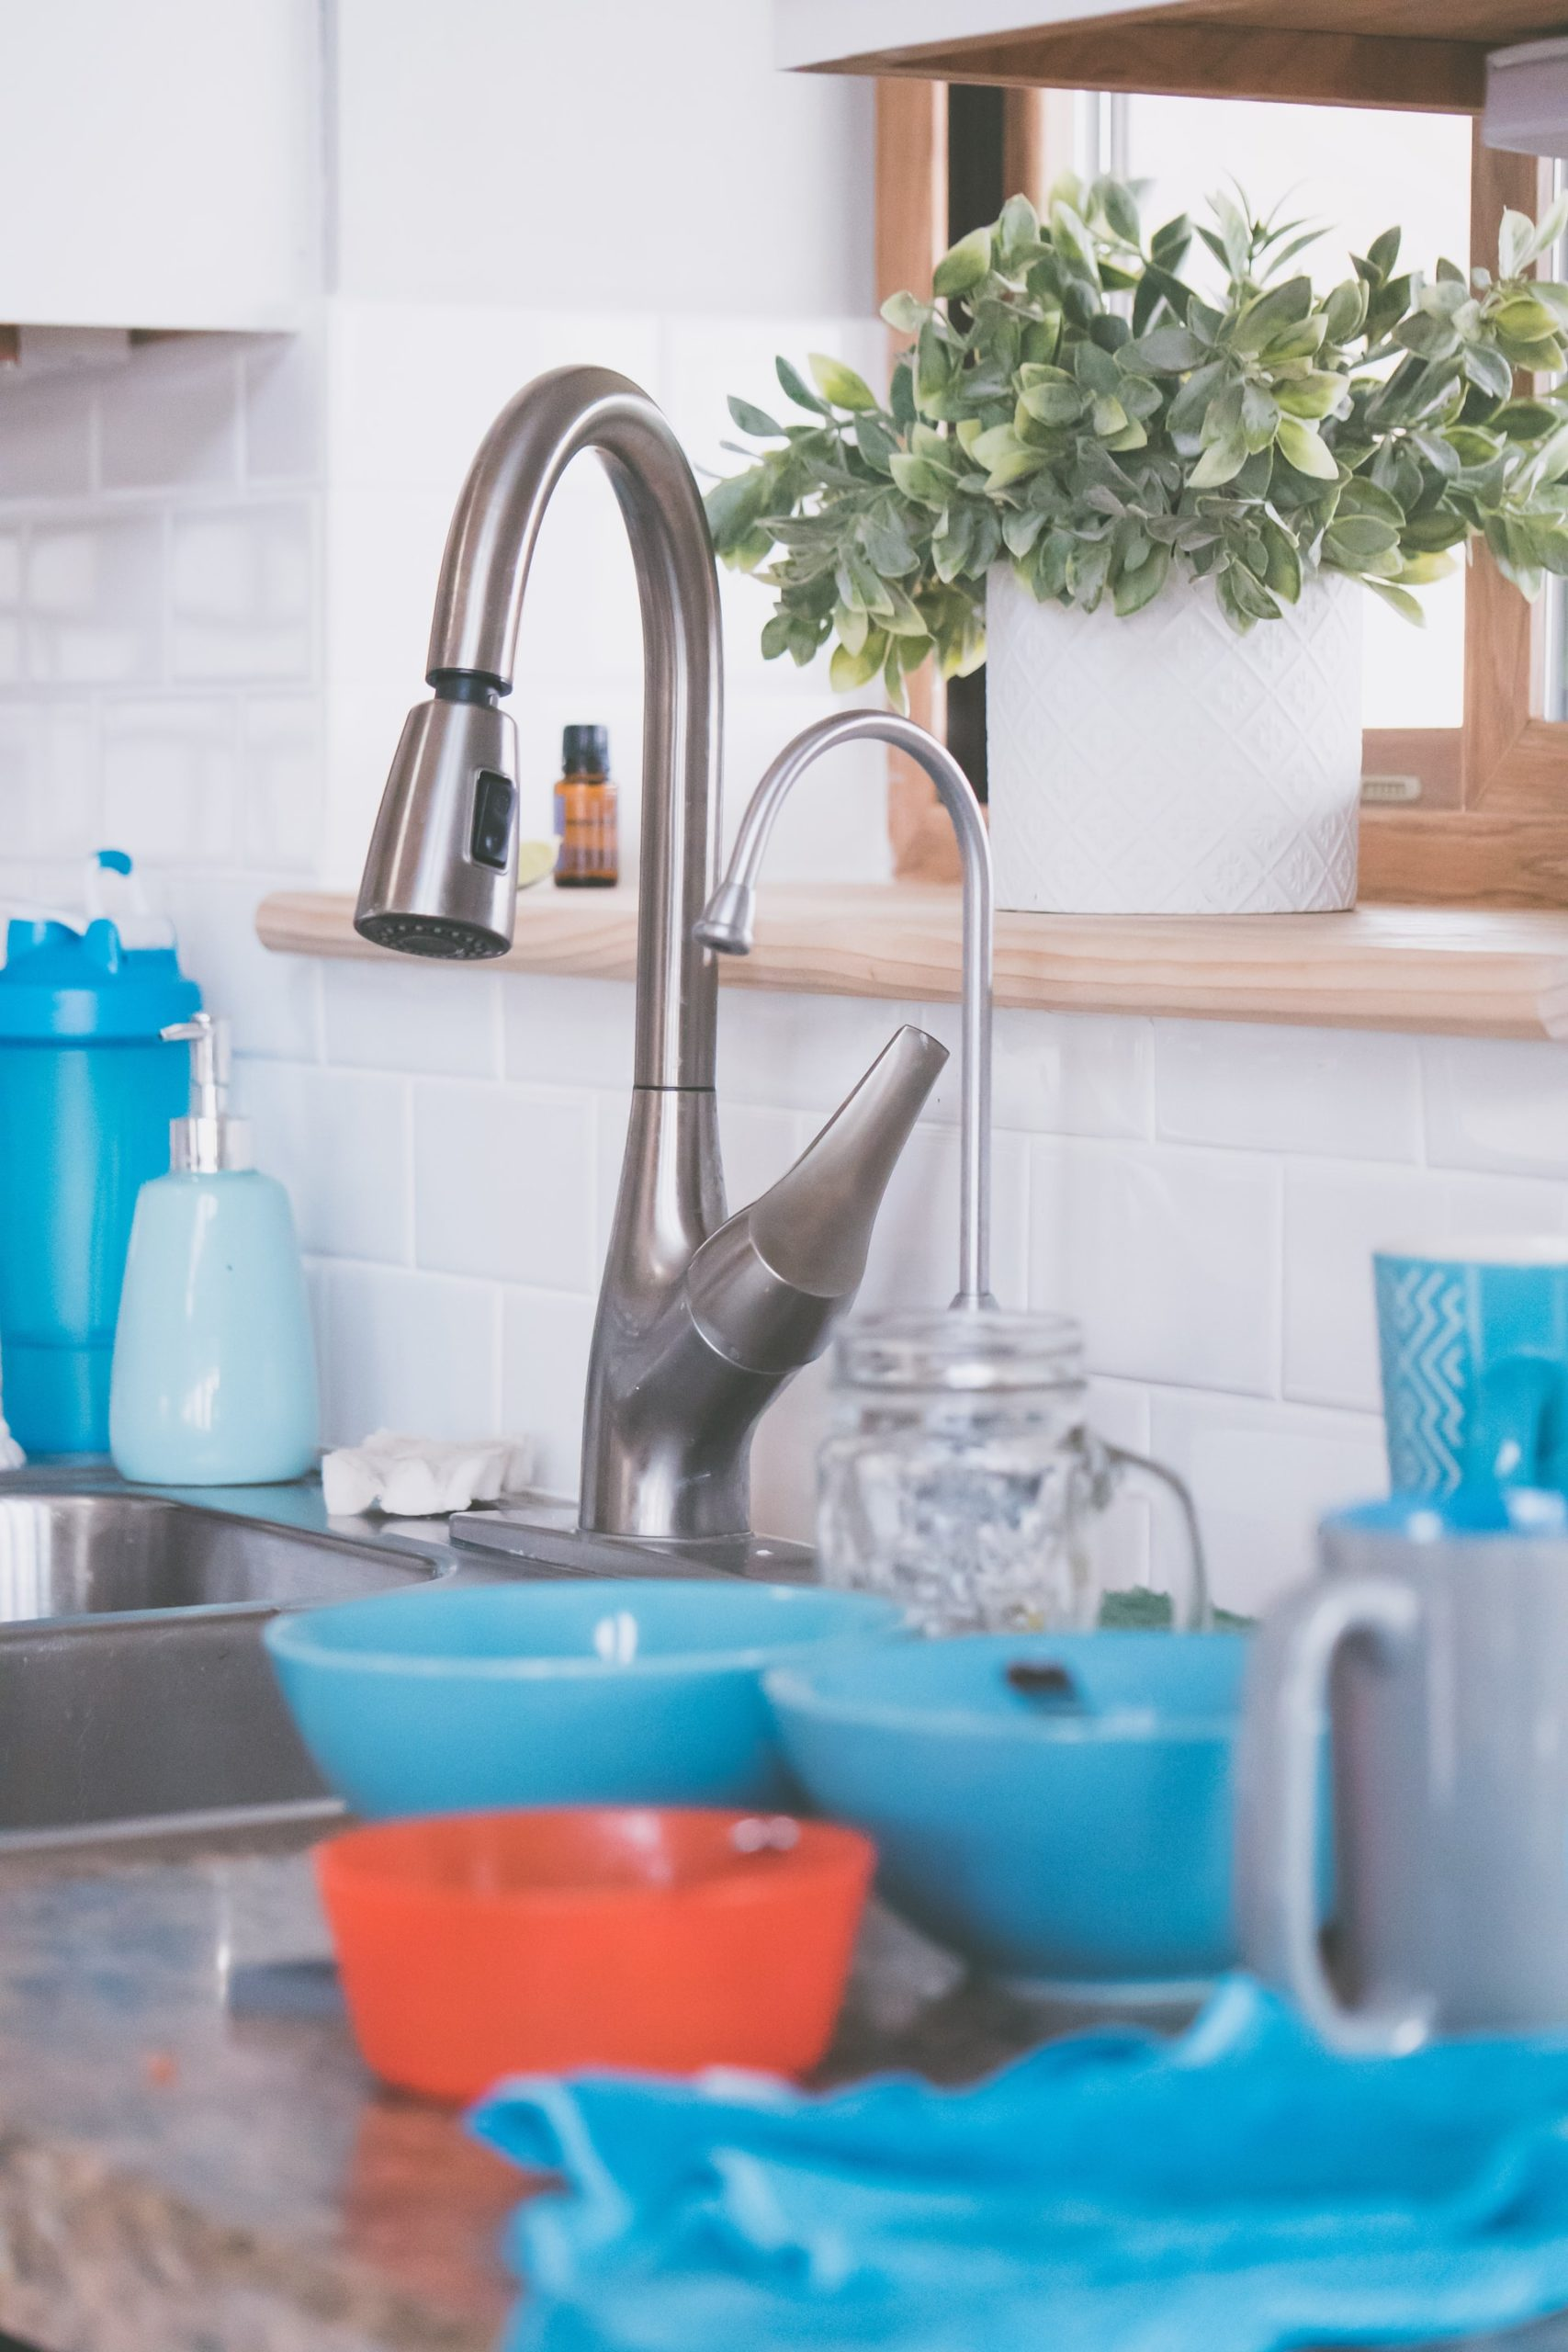 Use Vinegar to Polish Stainless Steel Taps